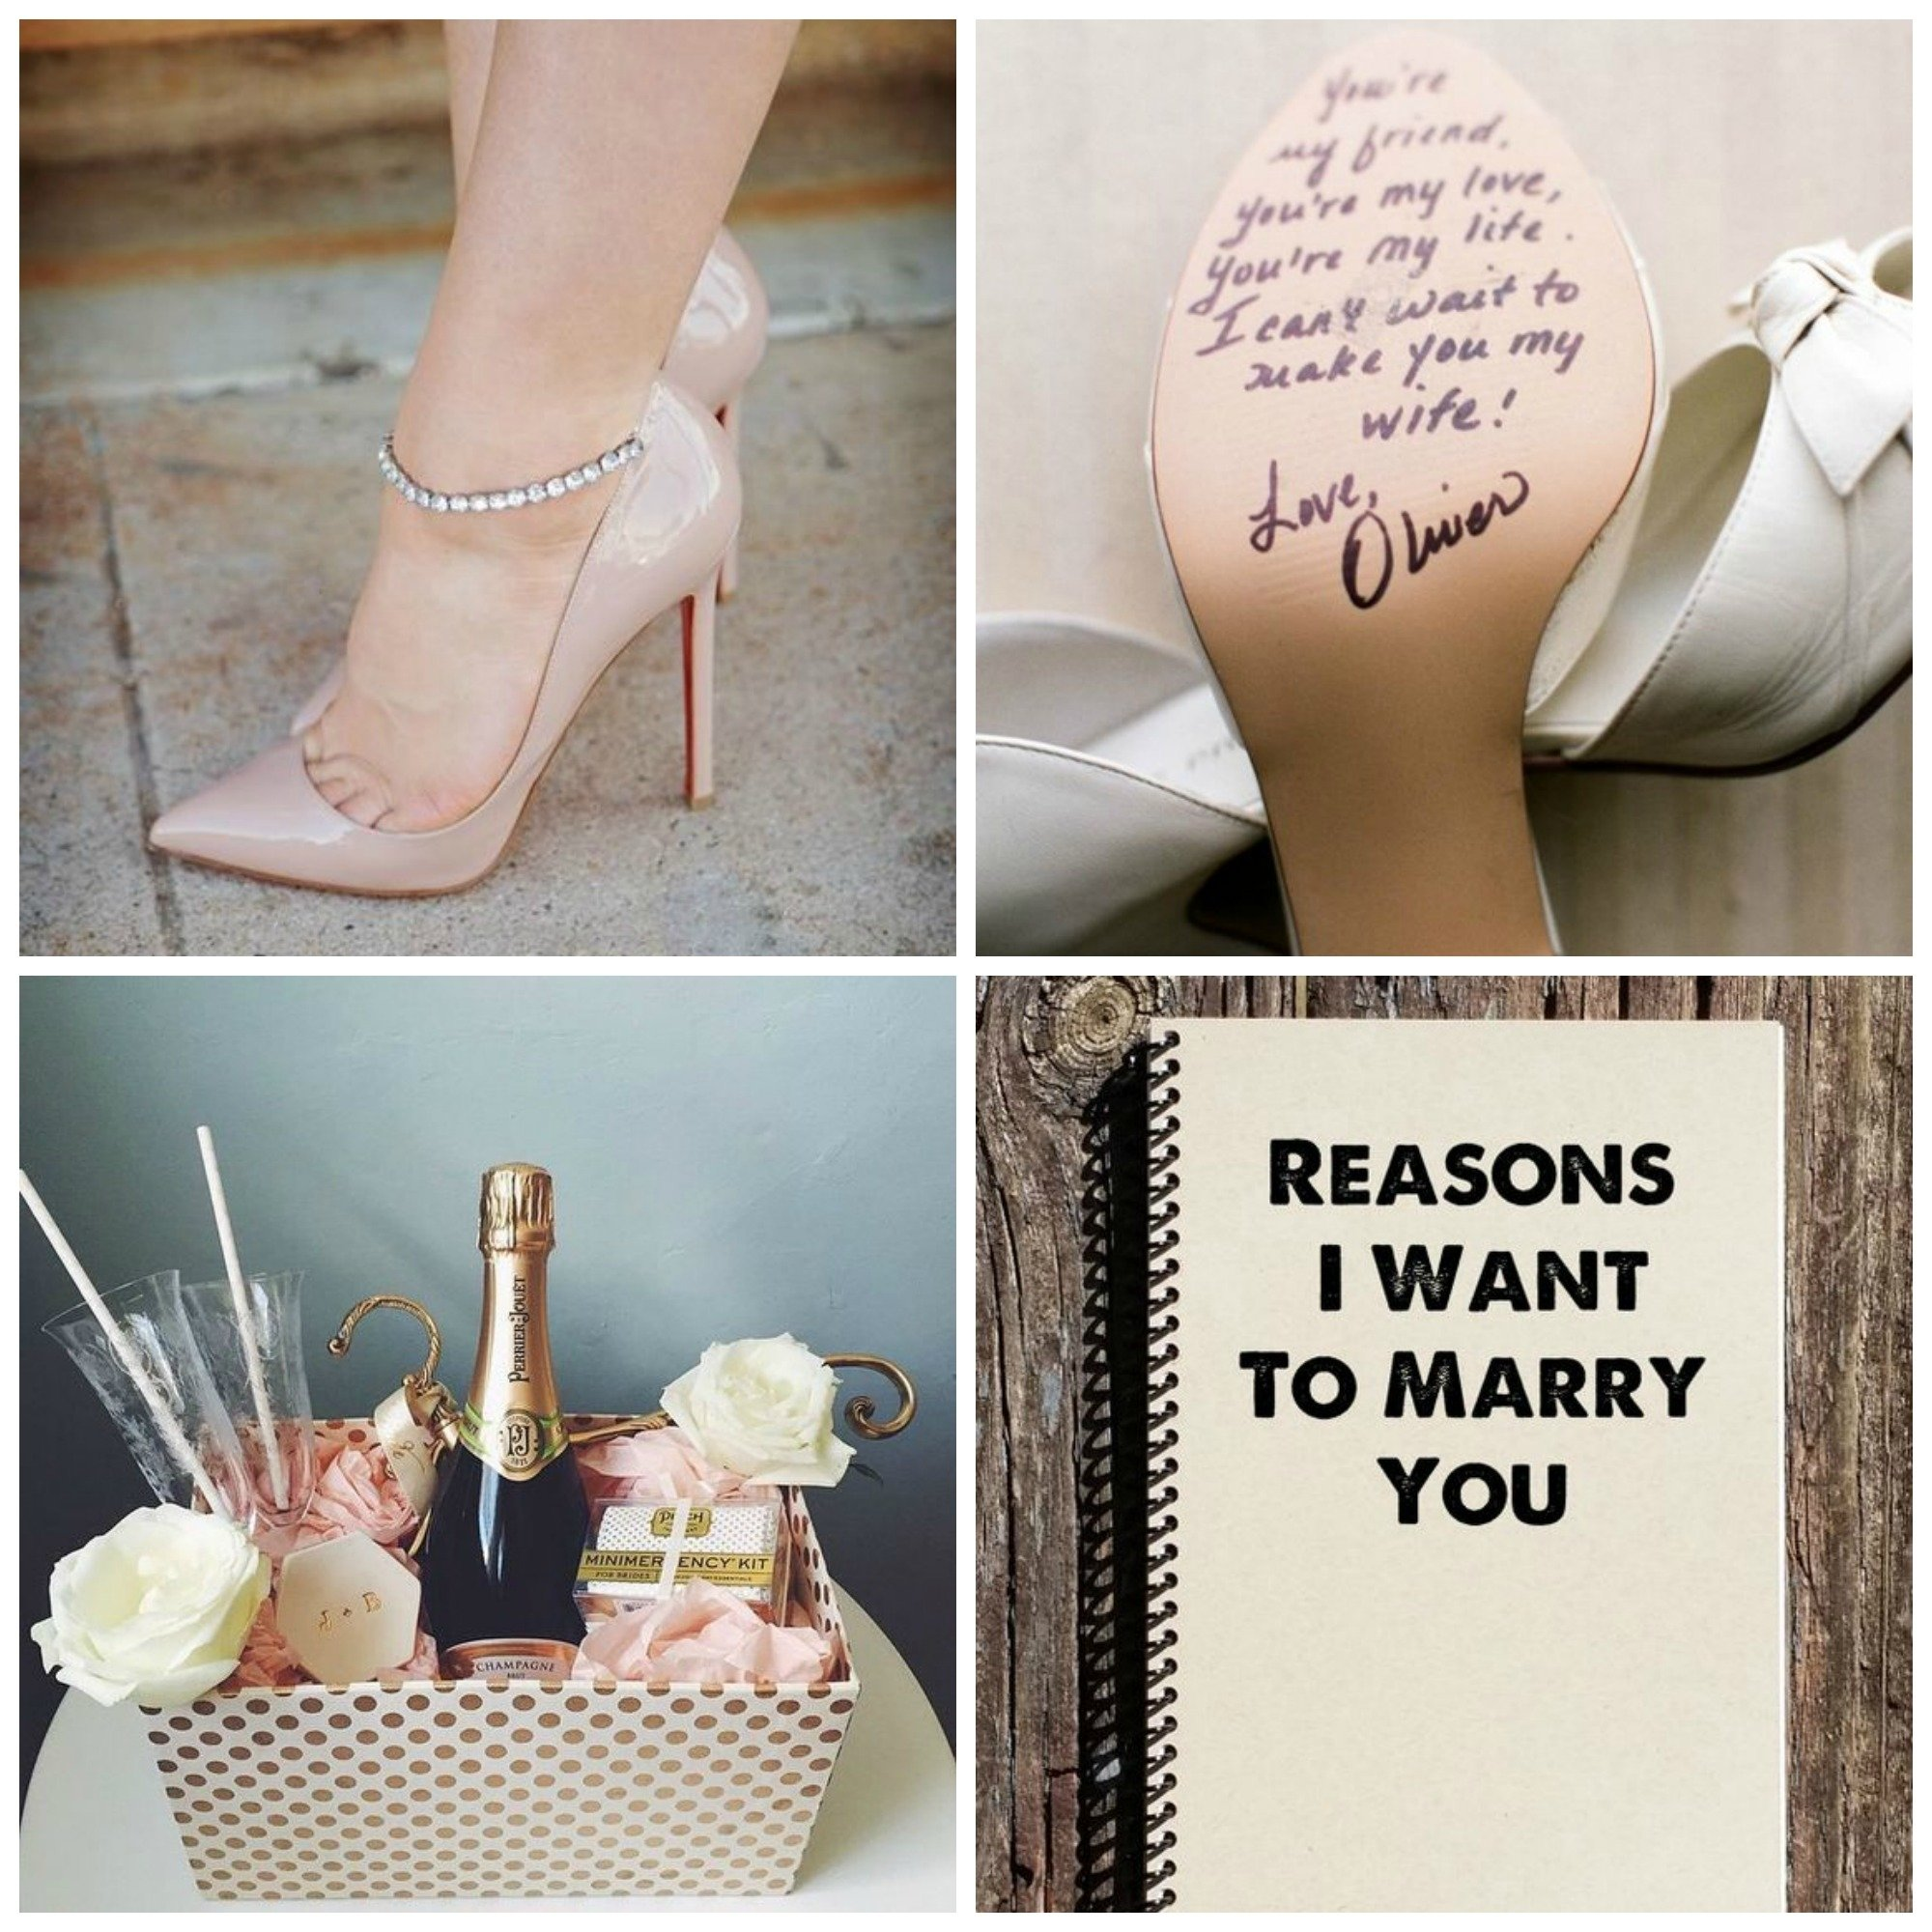 10 Most Recommended Gift Ideas For Bride To Be bride groom gifts perfect details 1 2021